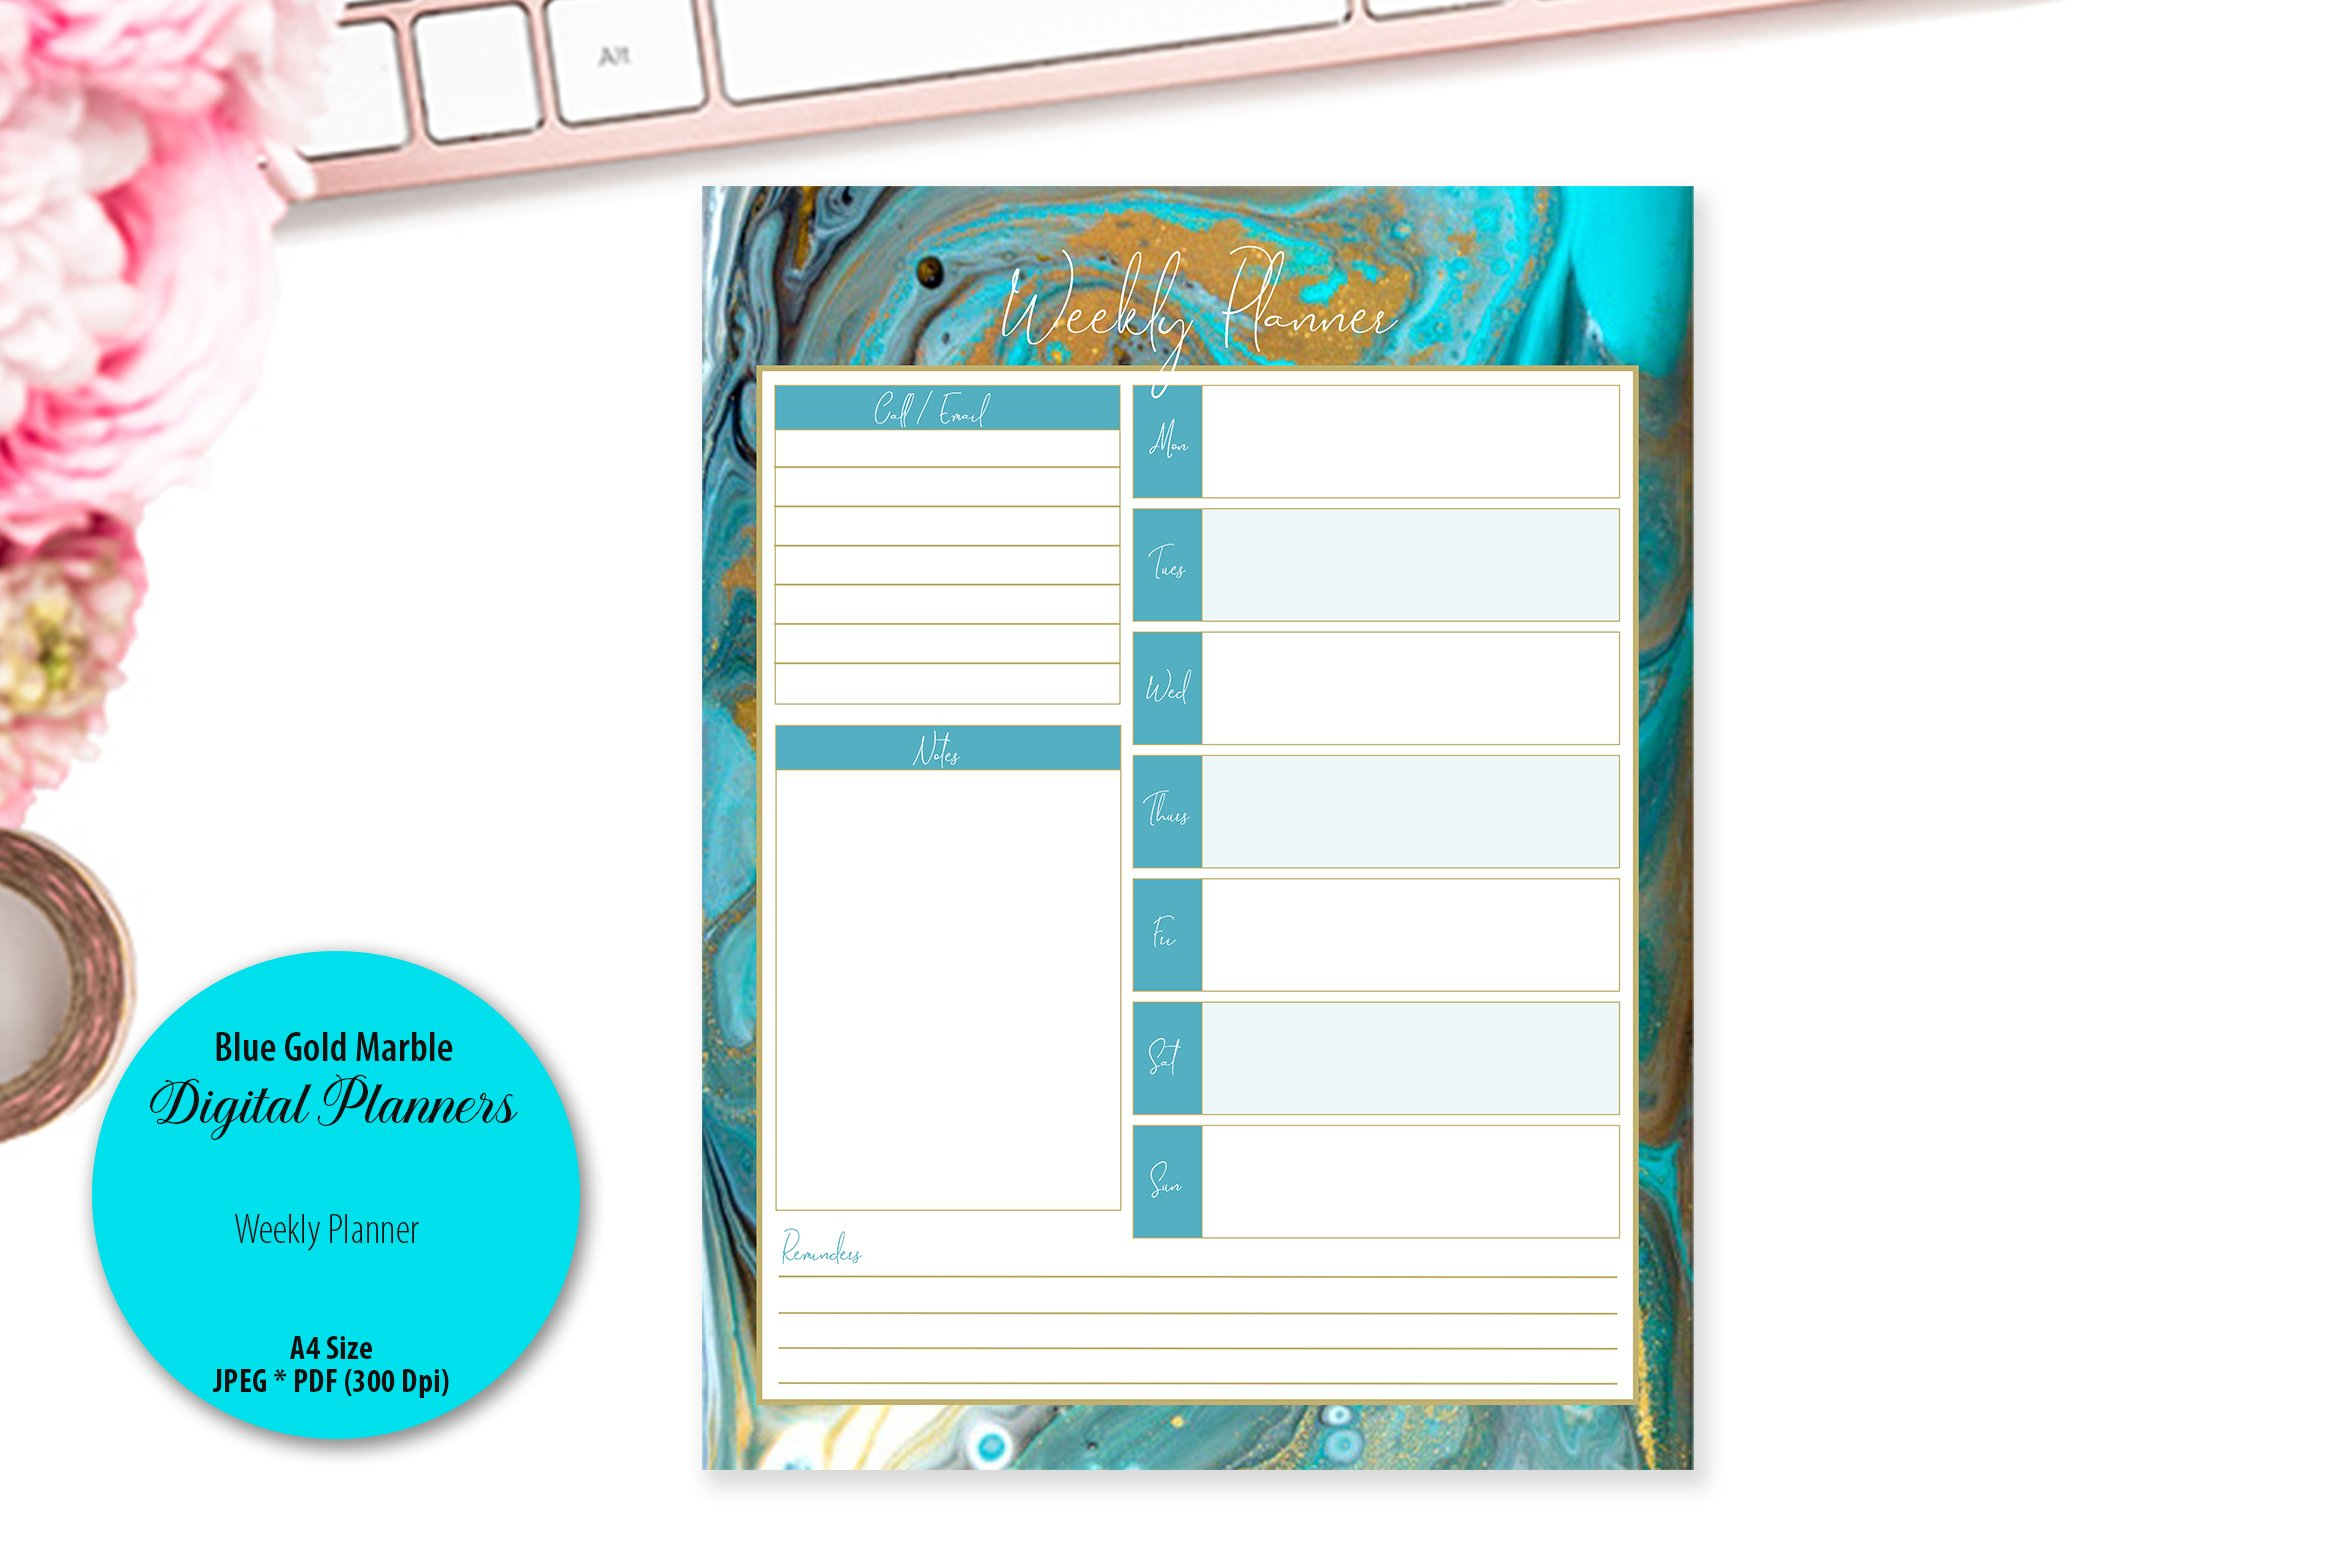 Blue Gold Marble Digital Planner example image 3